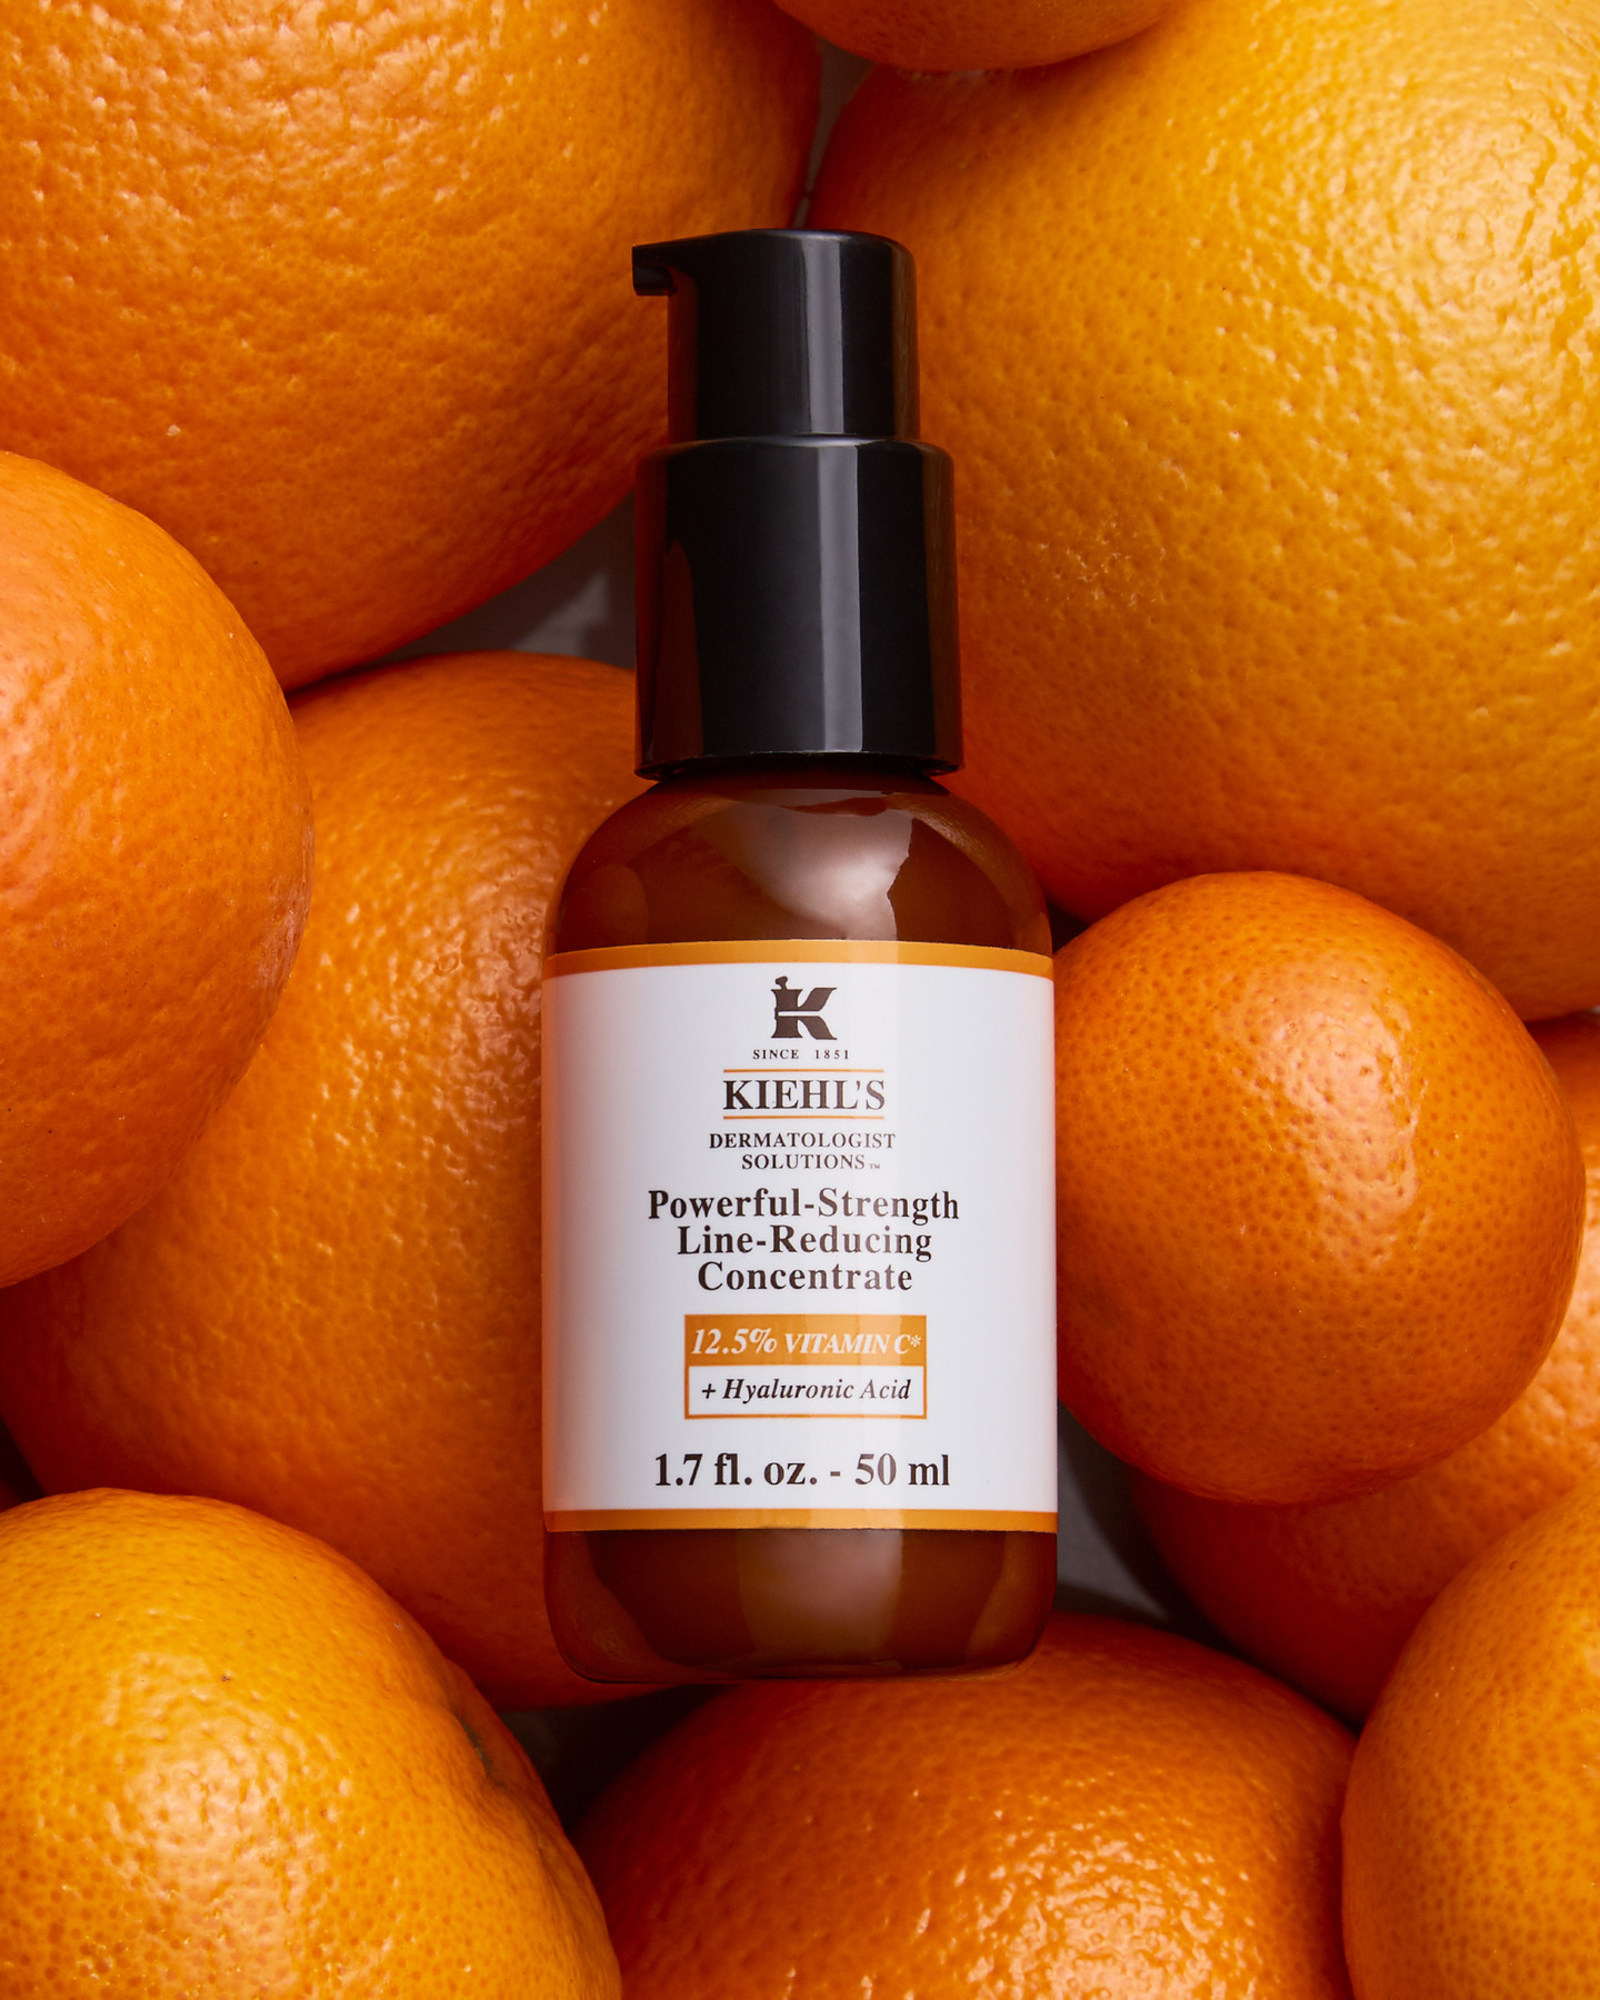 Kiehl's Since 1851 updates the Powerful-Strength Line-Reducing Concentrate